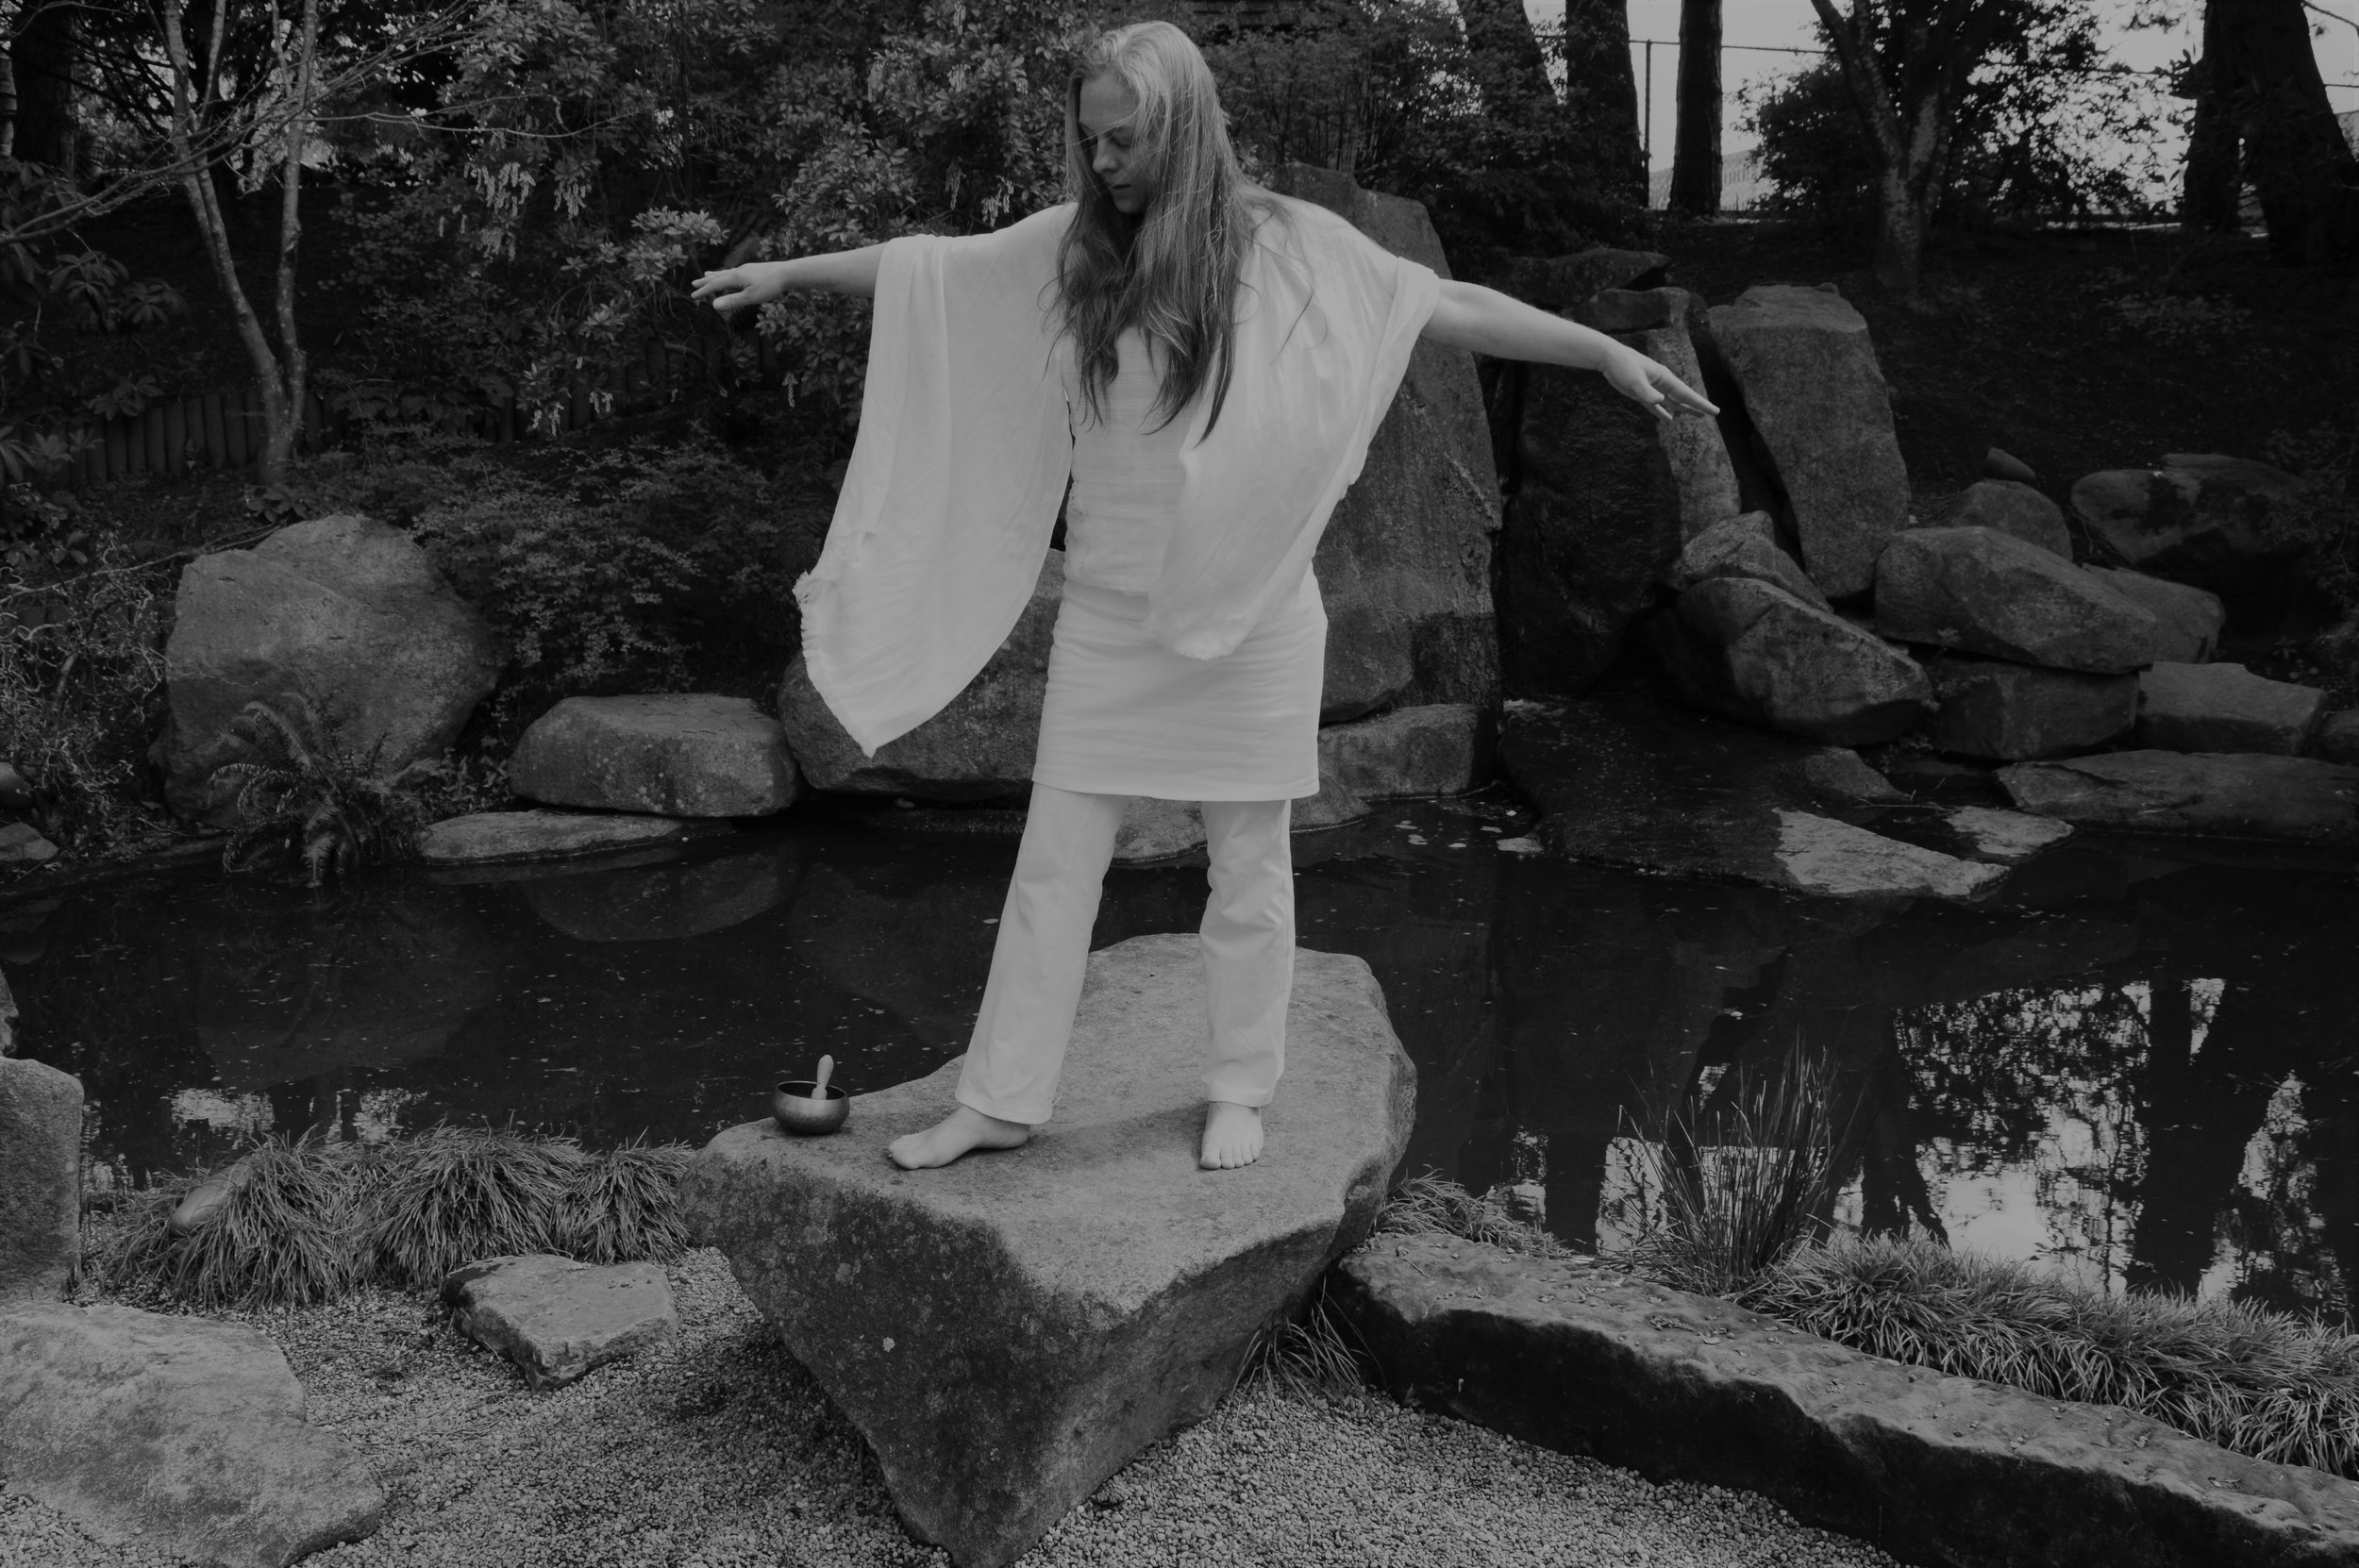 Susan Kanzler - Susan teaches Kundalini Yoga at the Dragonfly Studio in Lacey at 5:30 pm Tuesdays.